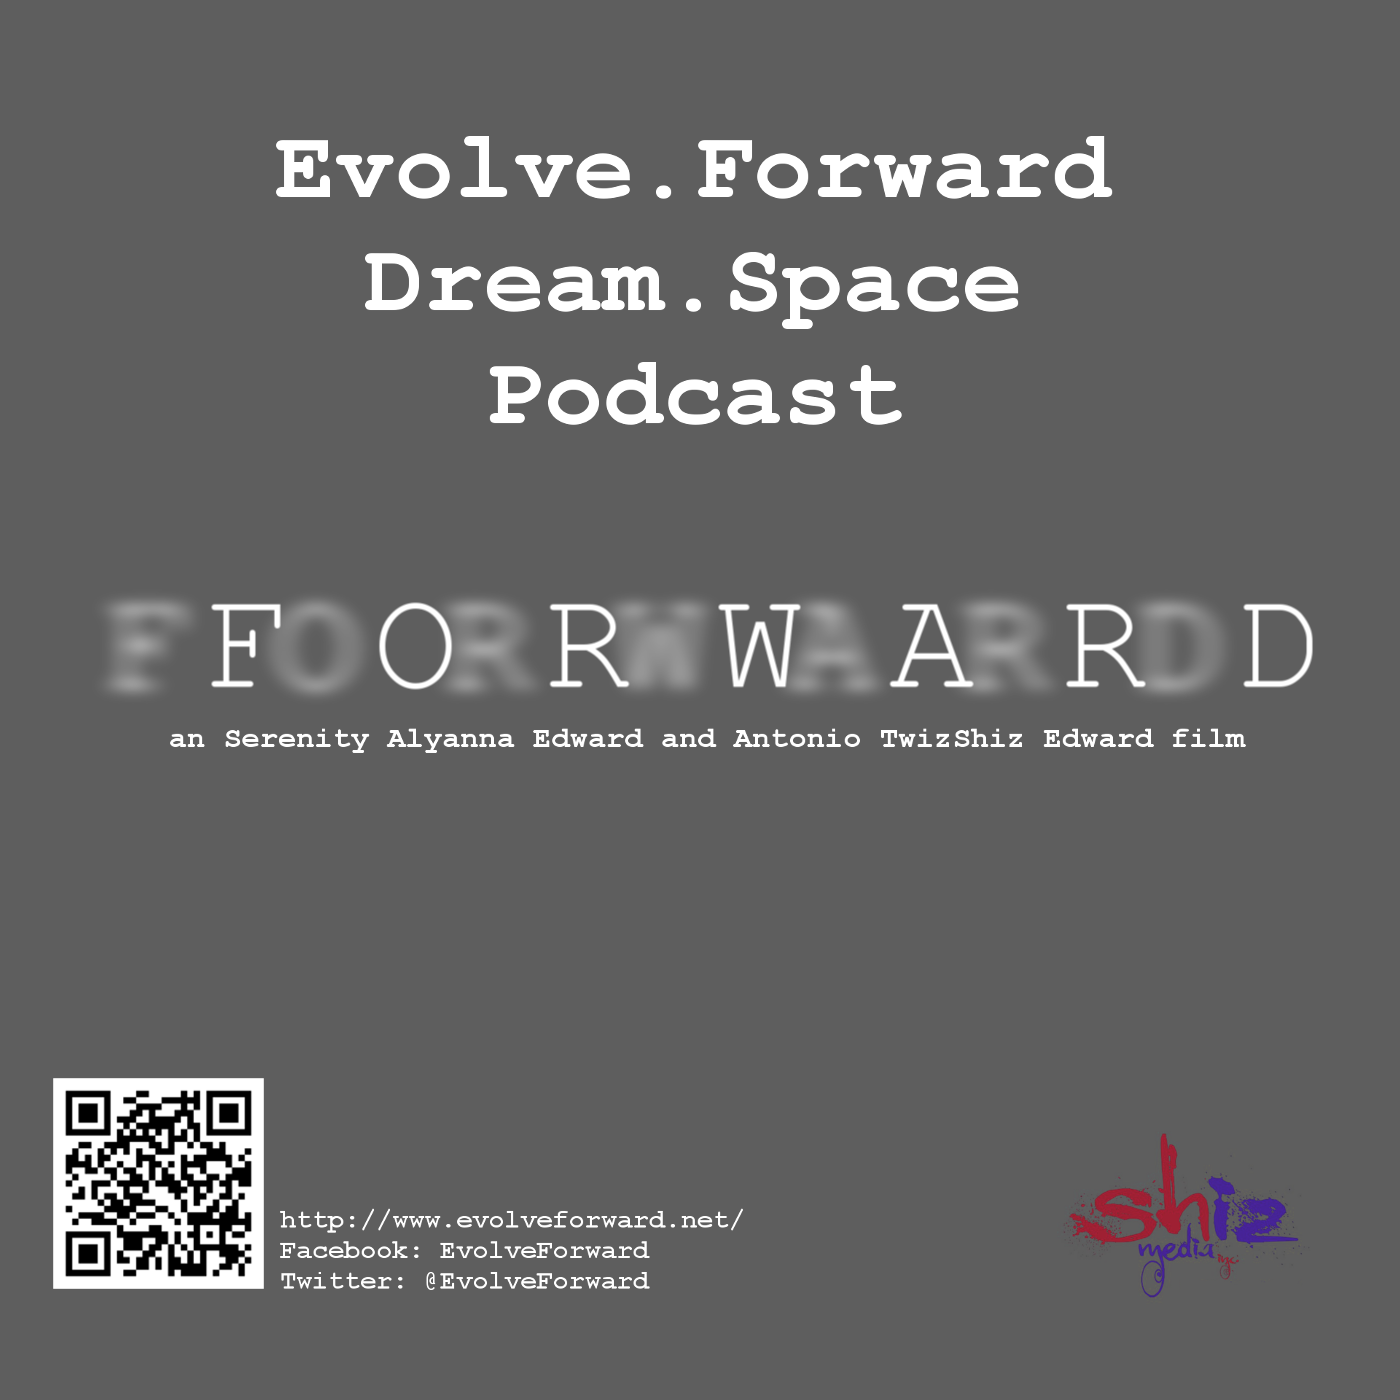 DreamSpace.Vision Podcast